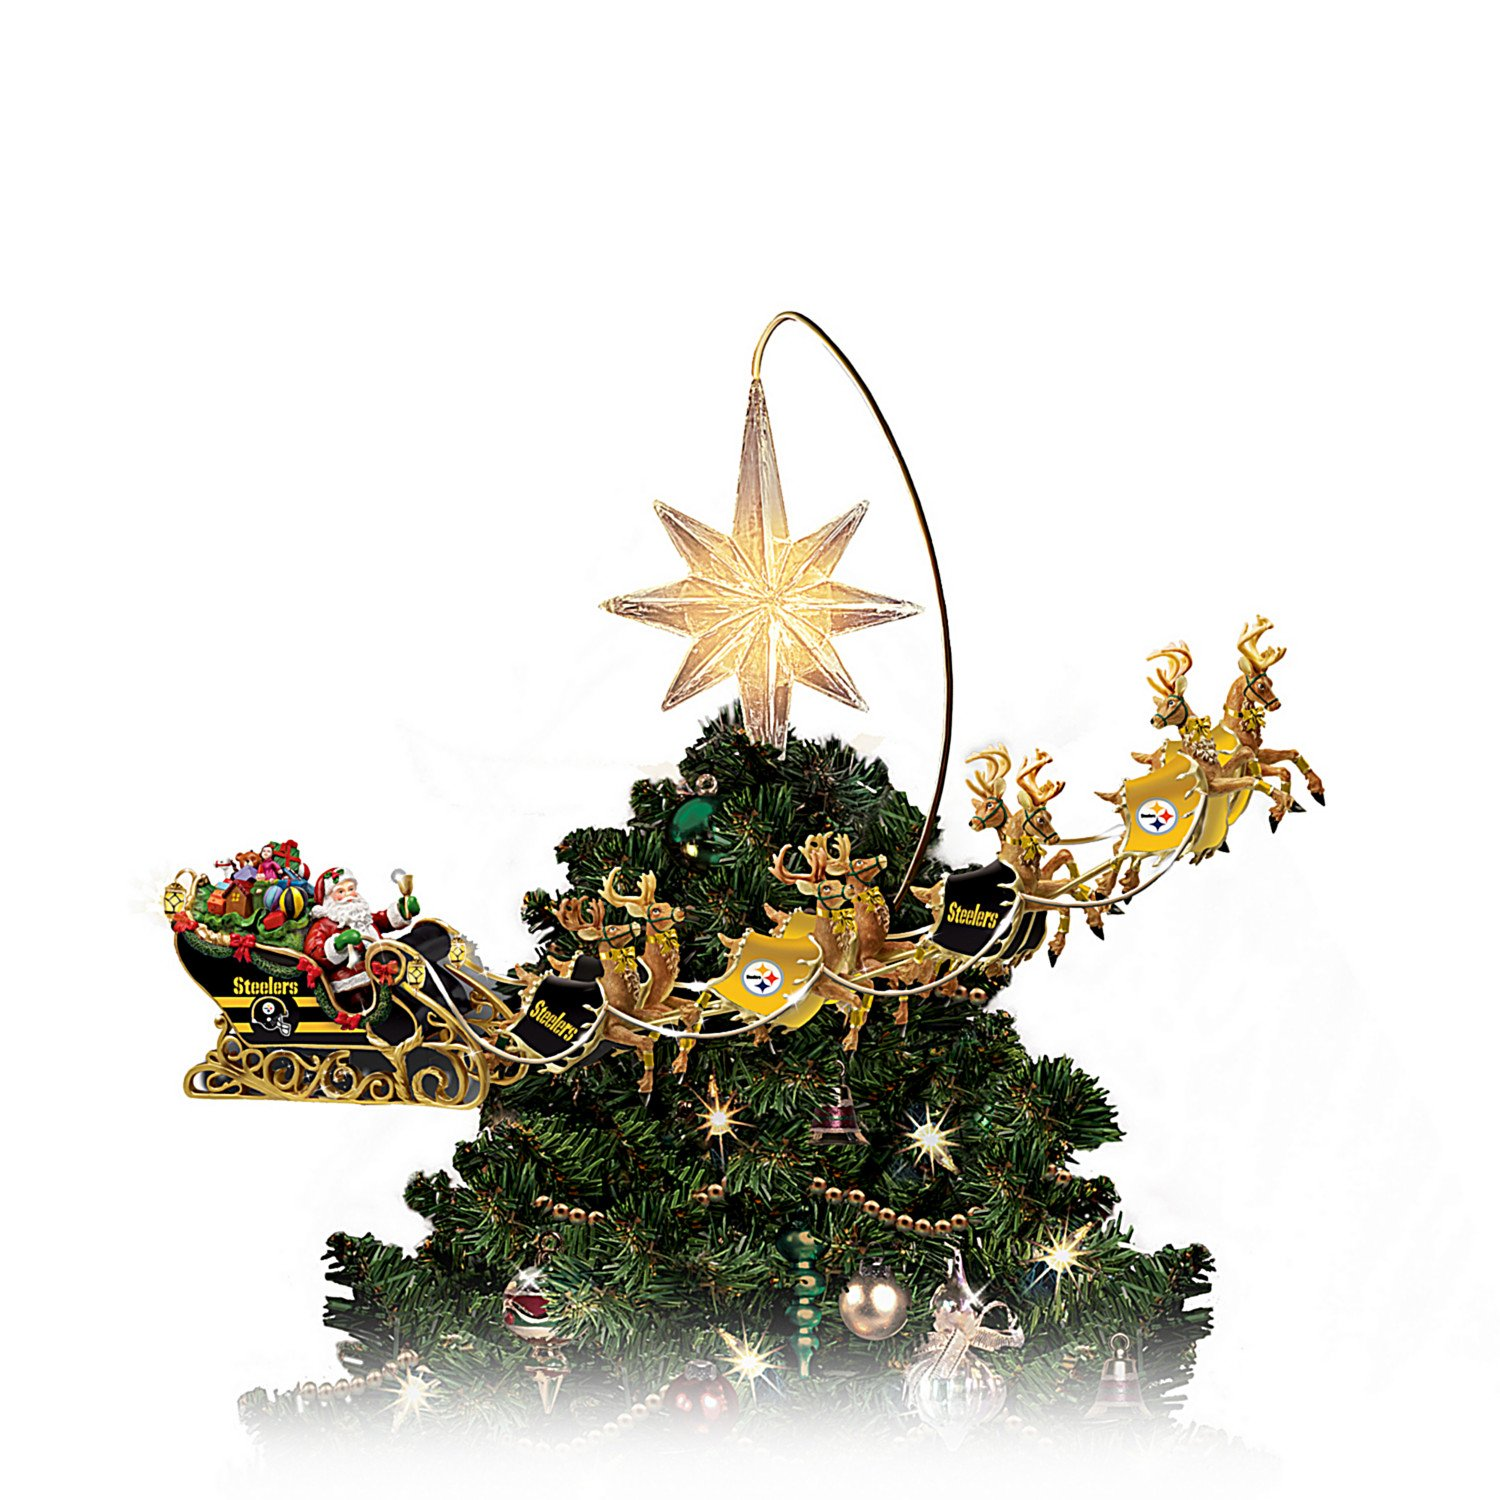 Nfl Licensed Pittsburgh Steelers Lighted Christmas Tree Topper Wiring For Front Component Speakersimg13681jpg Holiday Pride By The Bradford Exchange Home Kitchen